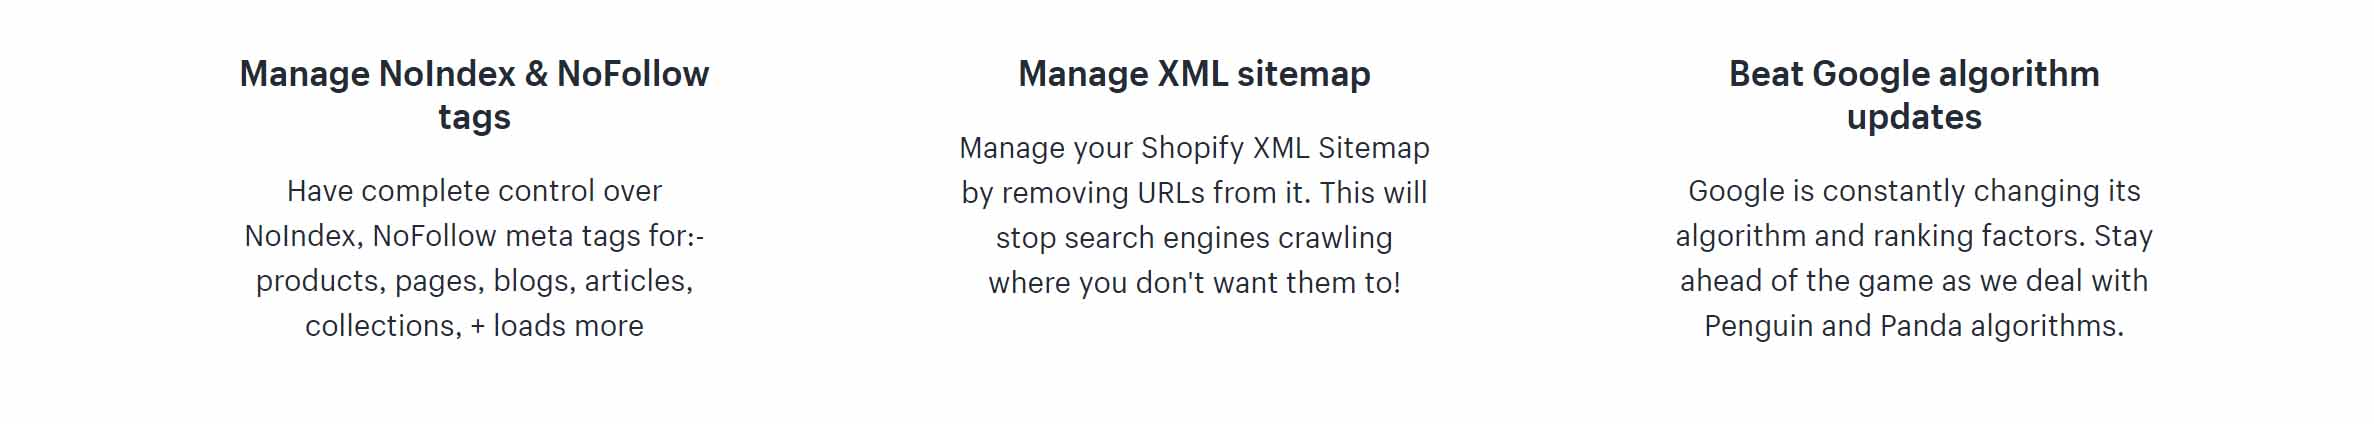 sitemap features